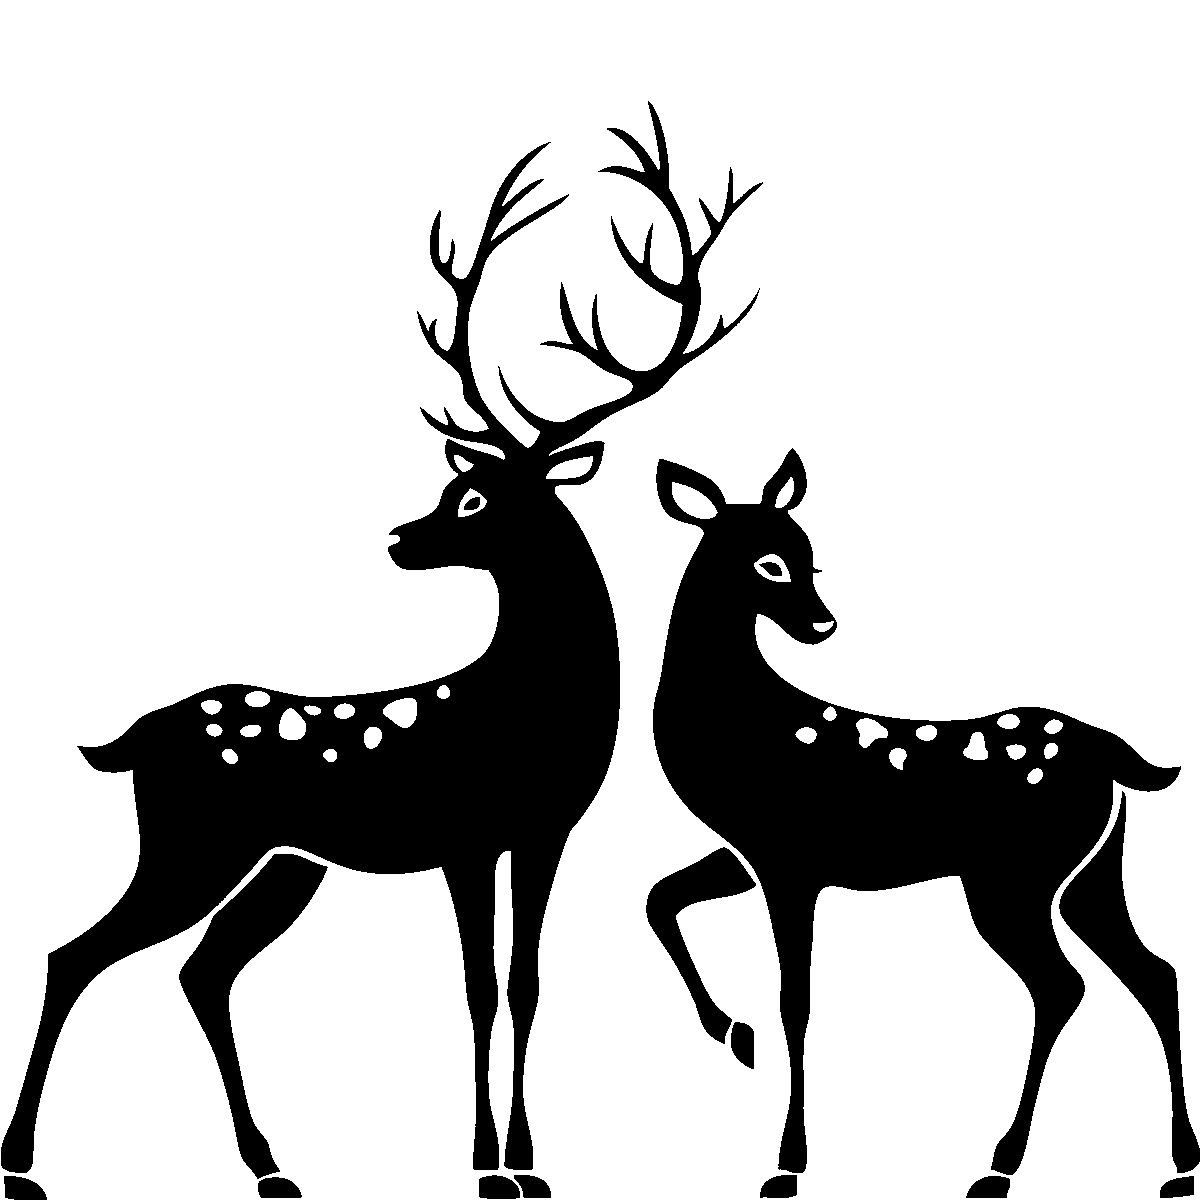 Stag And Doe Png - Buck And Doe Png & Free Buck And Doe.png Transparent Images #53594 ...